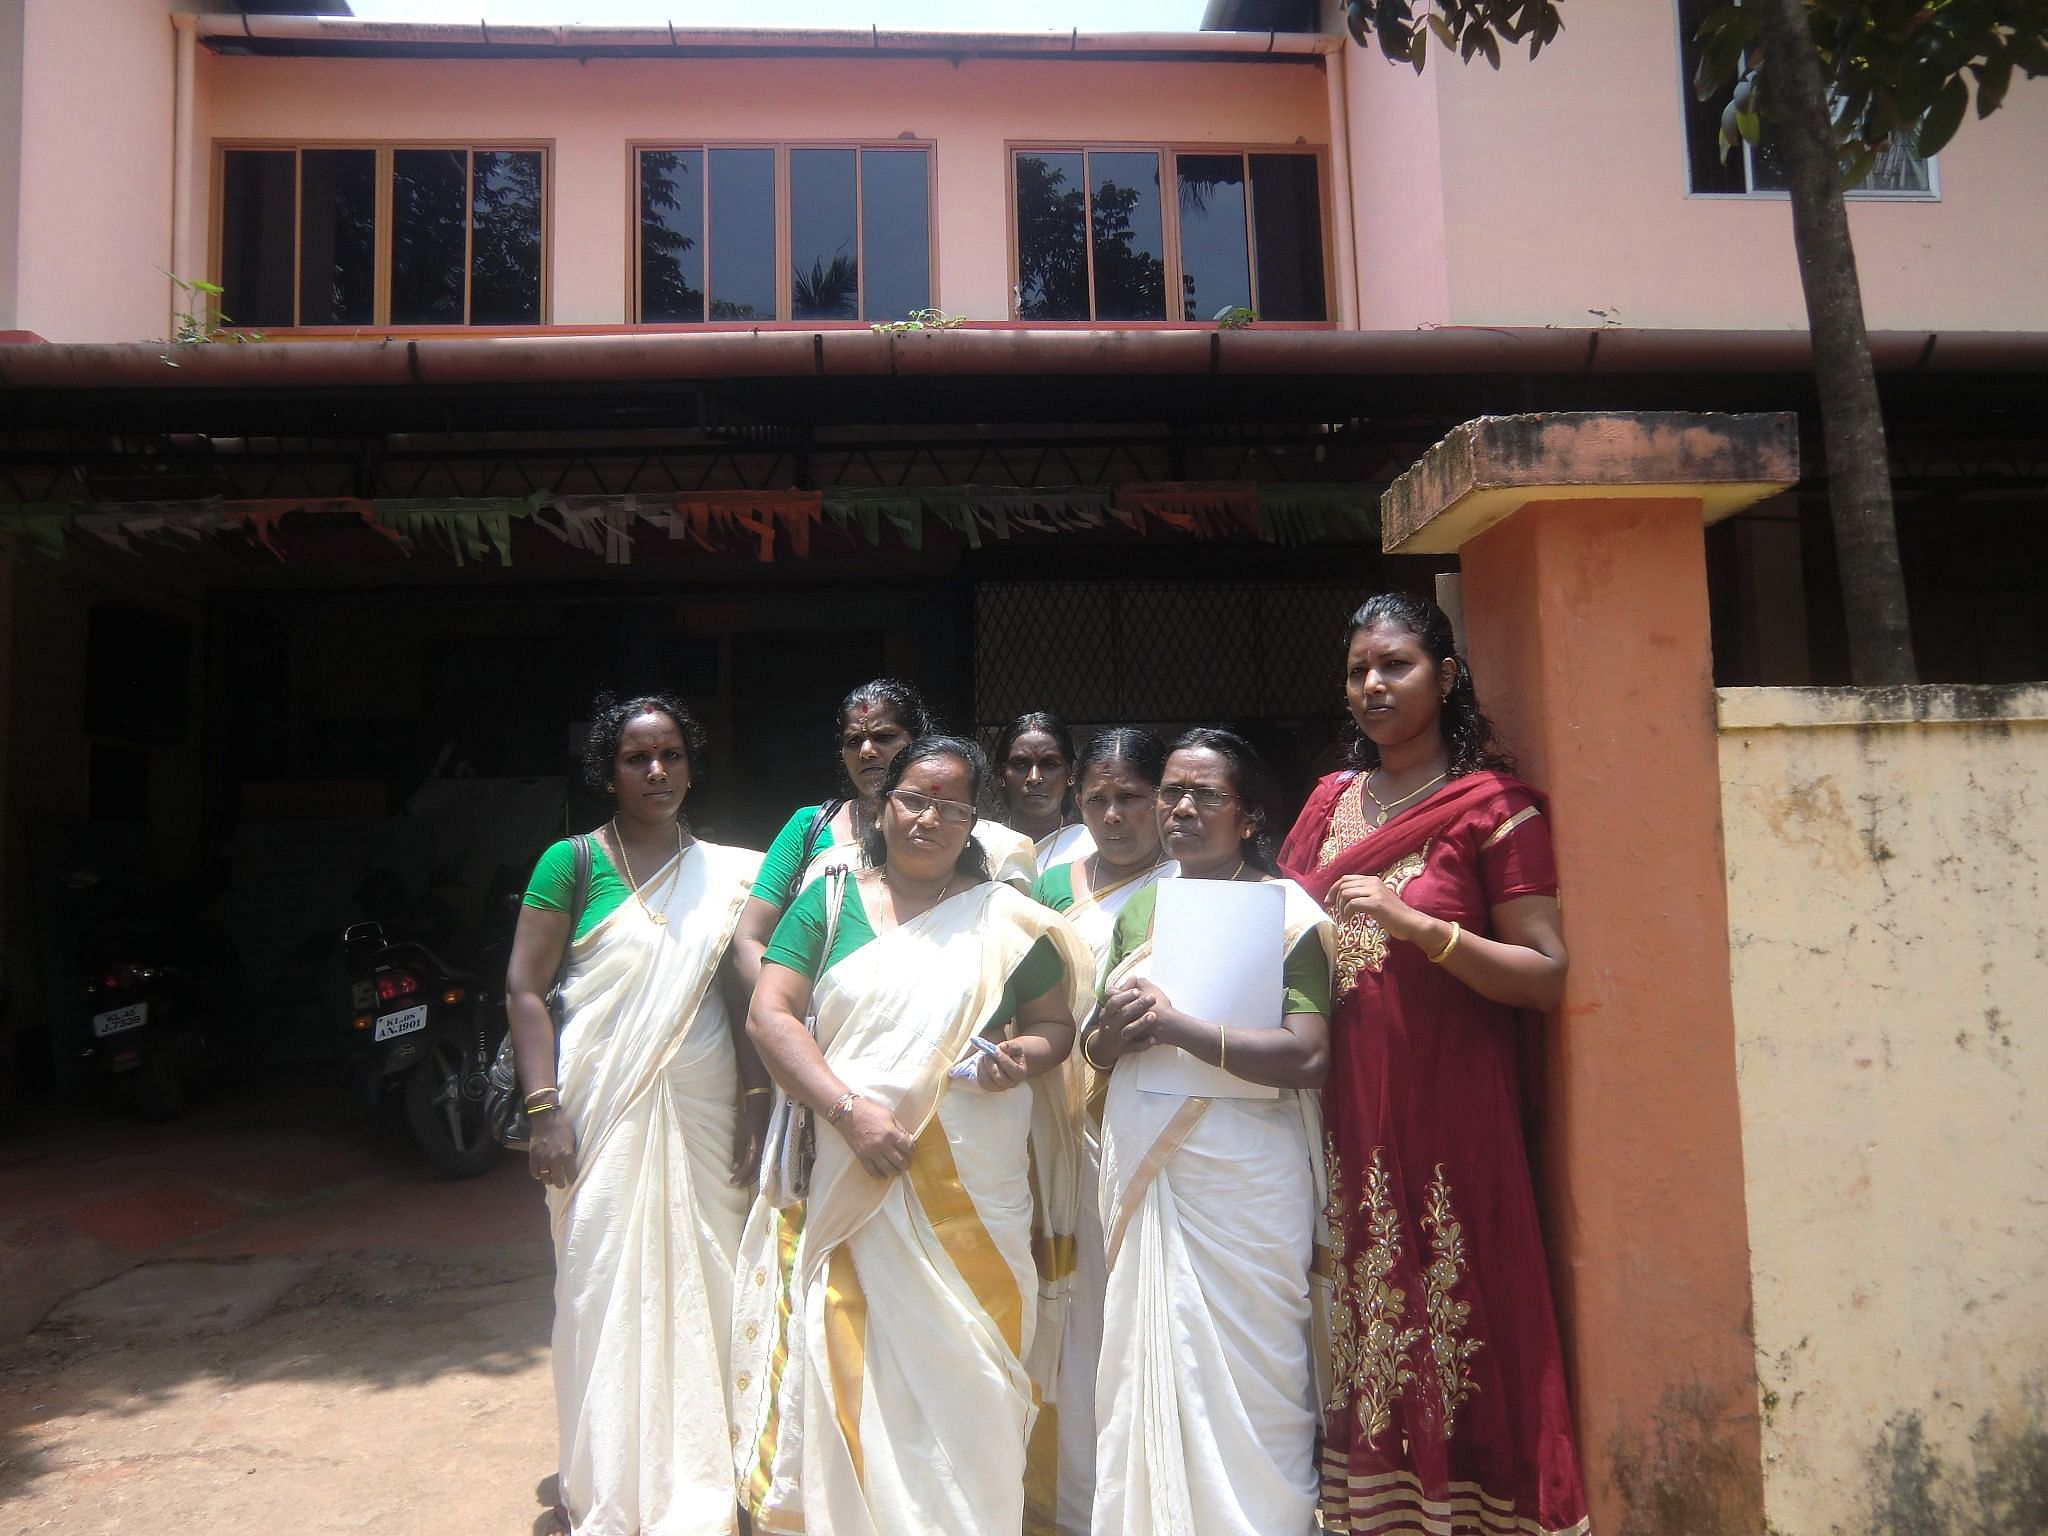 The feisty women members of grassroots groups like the Kerala Pulayar Maha Sabha (KPMS) or the OBC Ezahva organisation and the Sree Narayana Dharma Paripalana (SNDP) in Kerala are successfully setting the community development agenda for their local self government bodies. (Credit: Ajitha Menon\WFS)